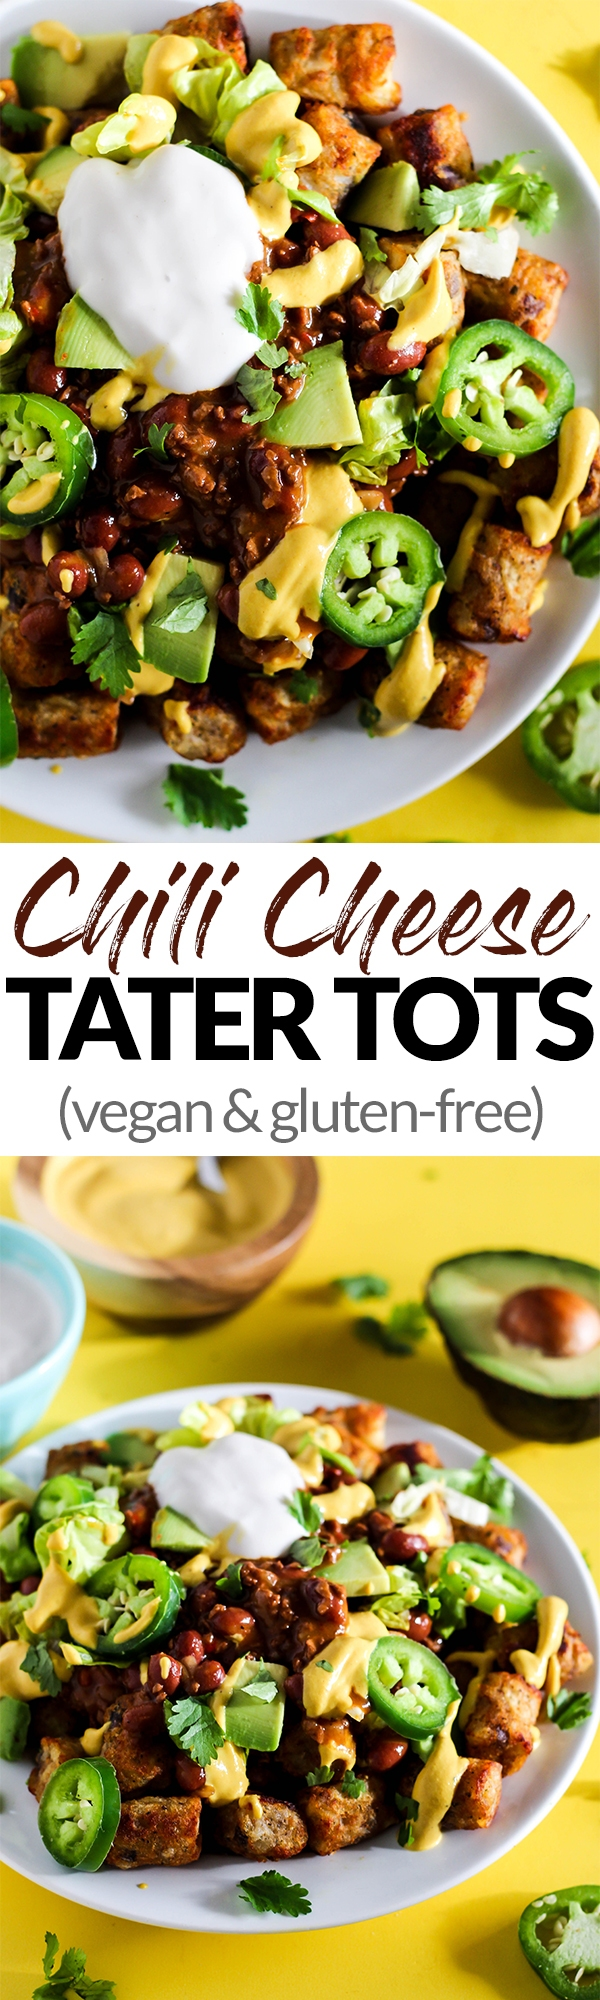 Serve up a plate of these Loaded Vegan Chili Cheese Tots as a delicious appetizer perfect for sharing! Full of bean chili, dairy-free cheese, and veggies.